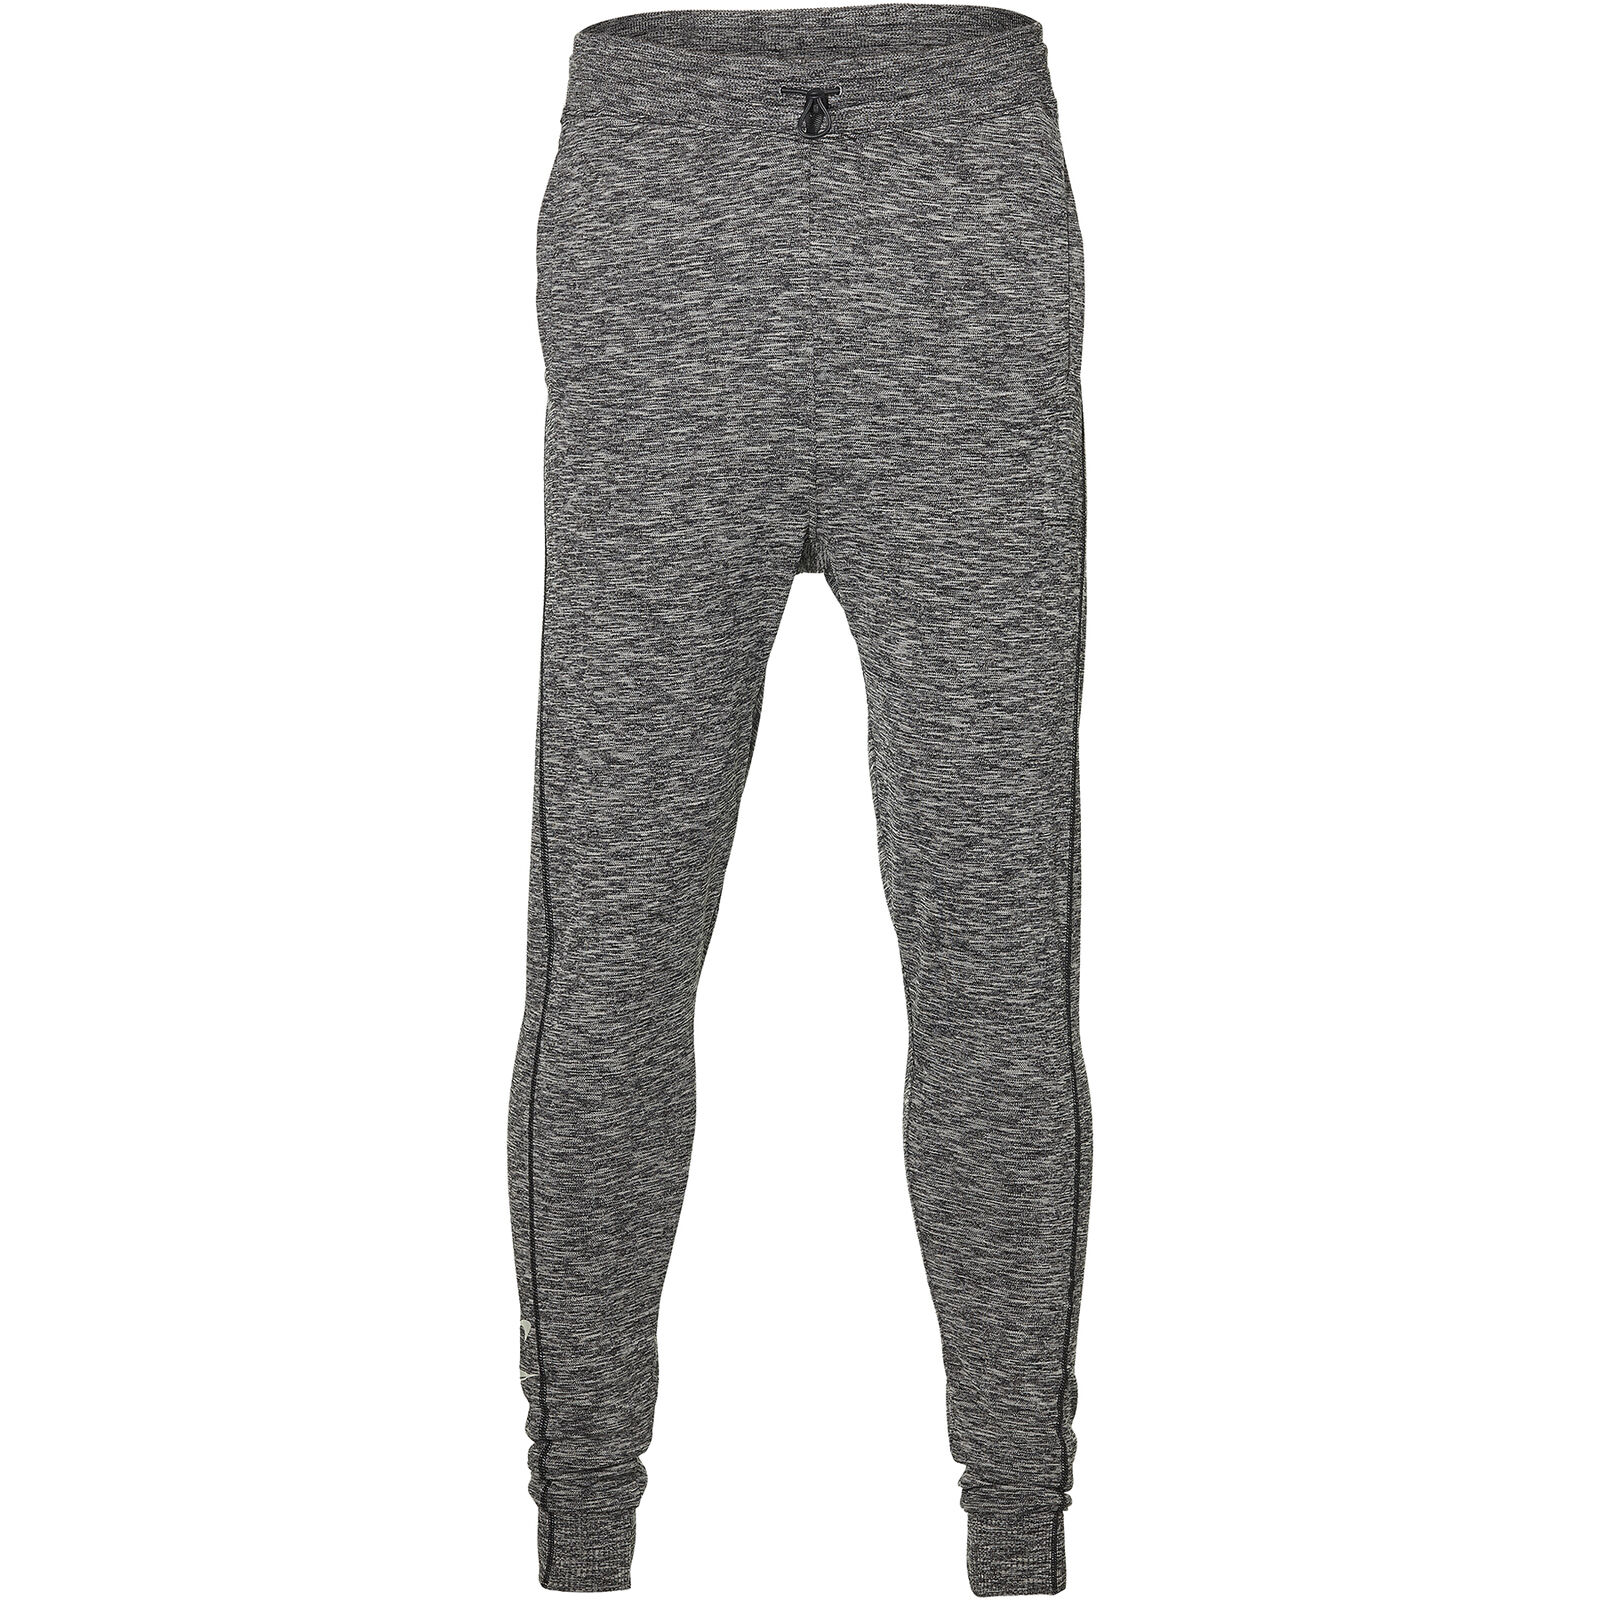 O'Neill Pants Racing kinetiq knitted trousers grey   designer online